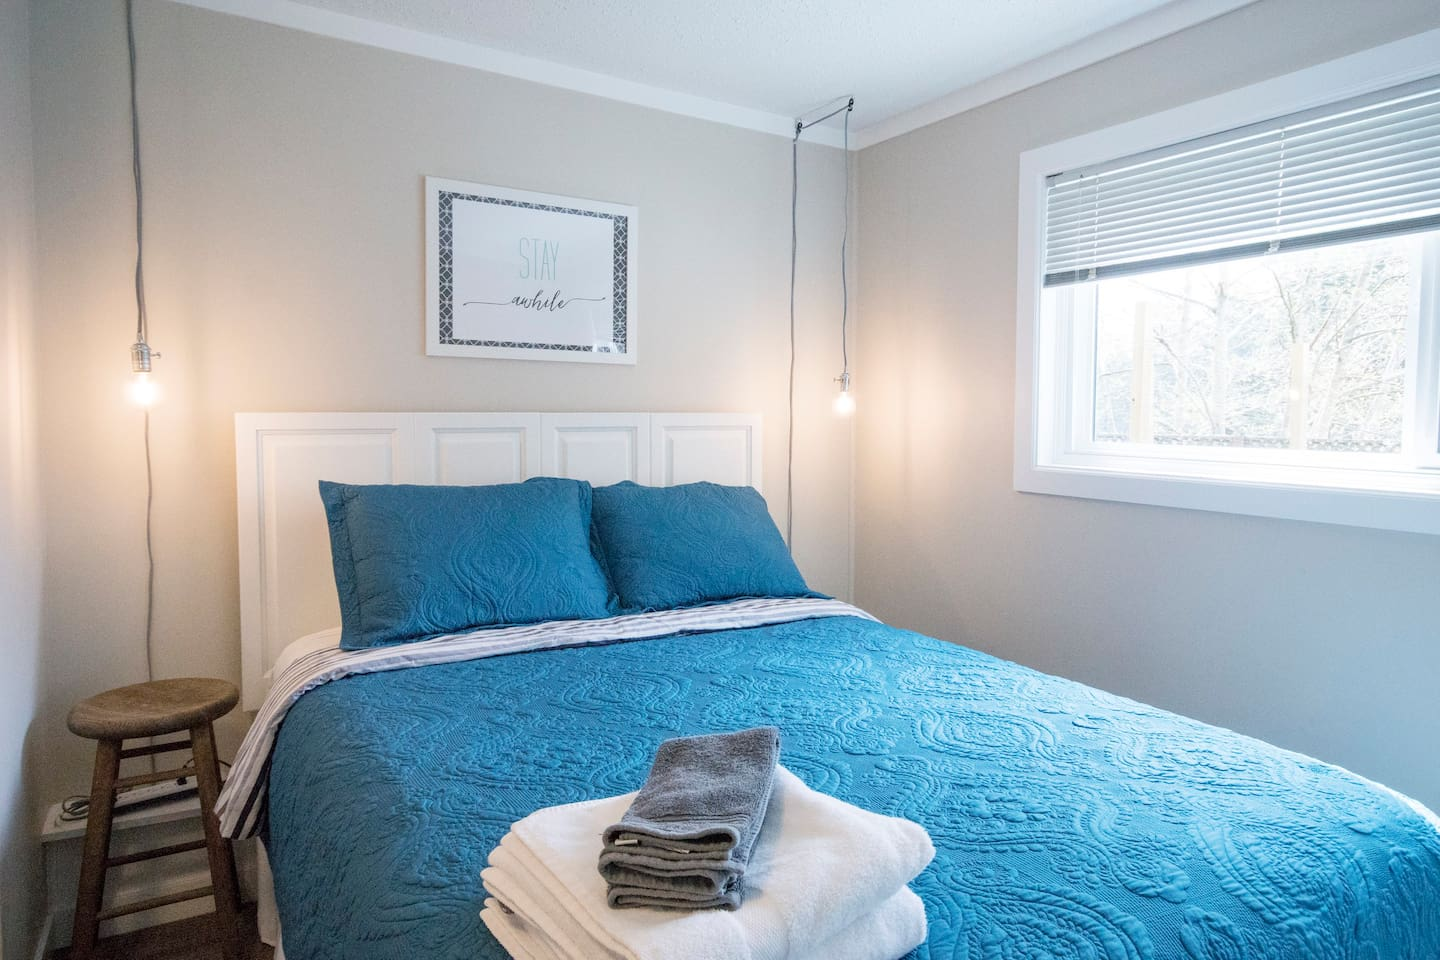 Queen sized bed with 4 pillows, duvet, and coverlet on top.  Room has closet and dresser.  Ensuite bathroom is off of bedroom.